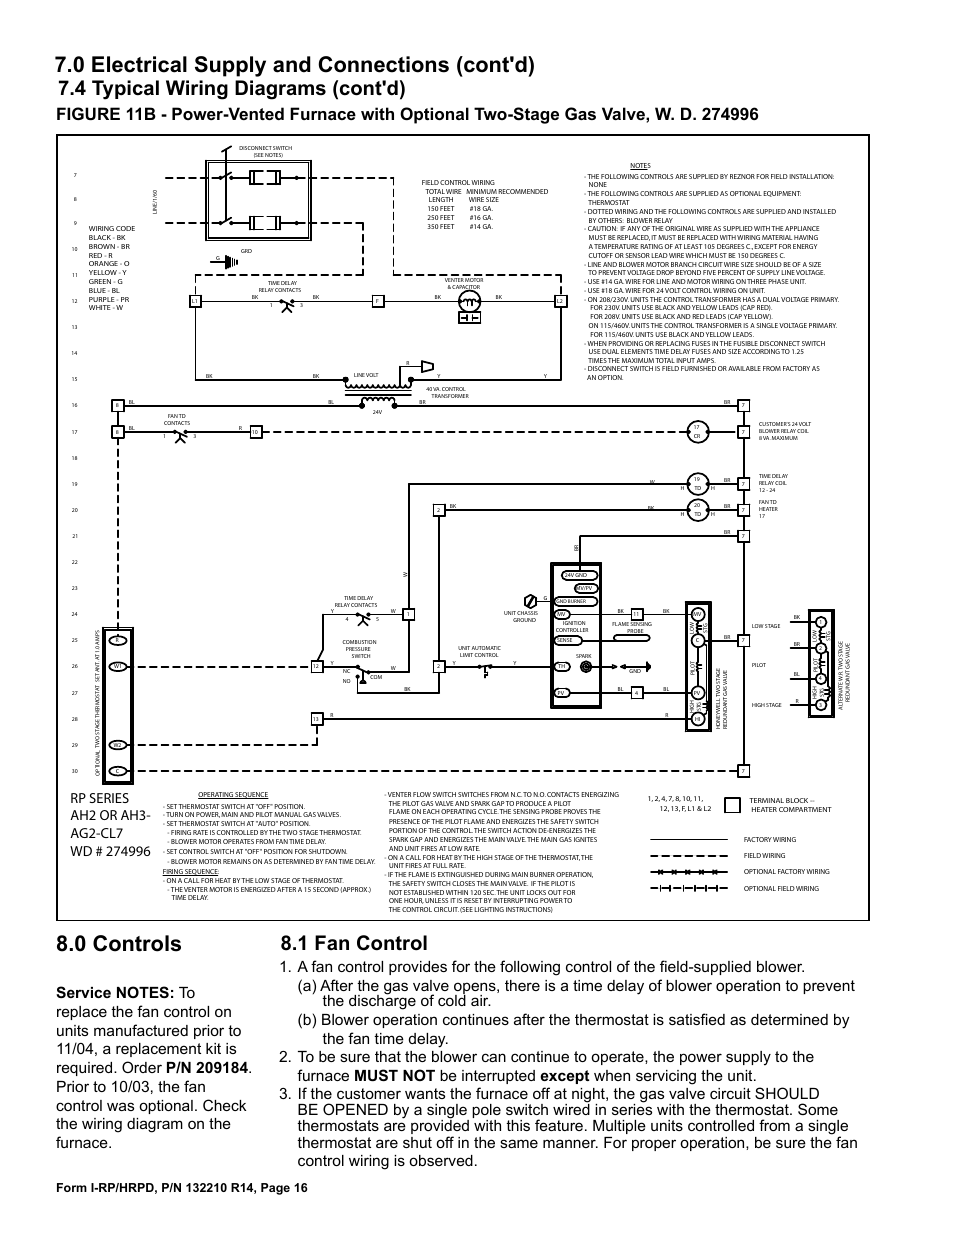 hight resolution of 1 fan control 4 typical wiring diagrams cont d reznor hrpd